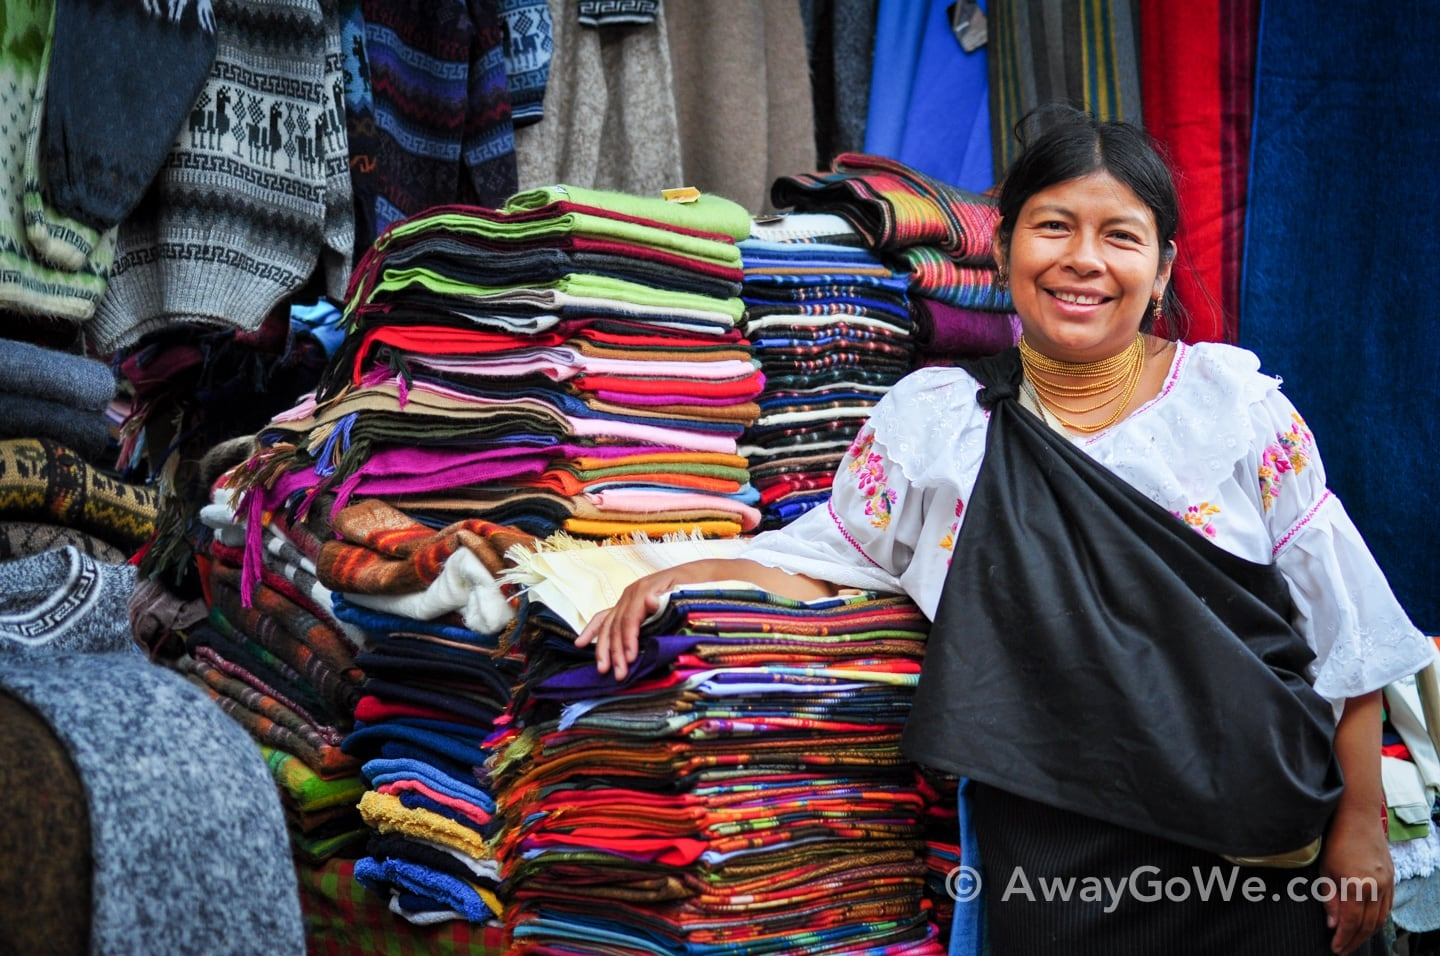 Andean woman with textiles